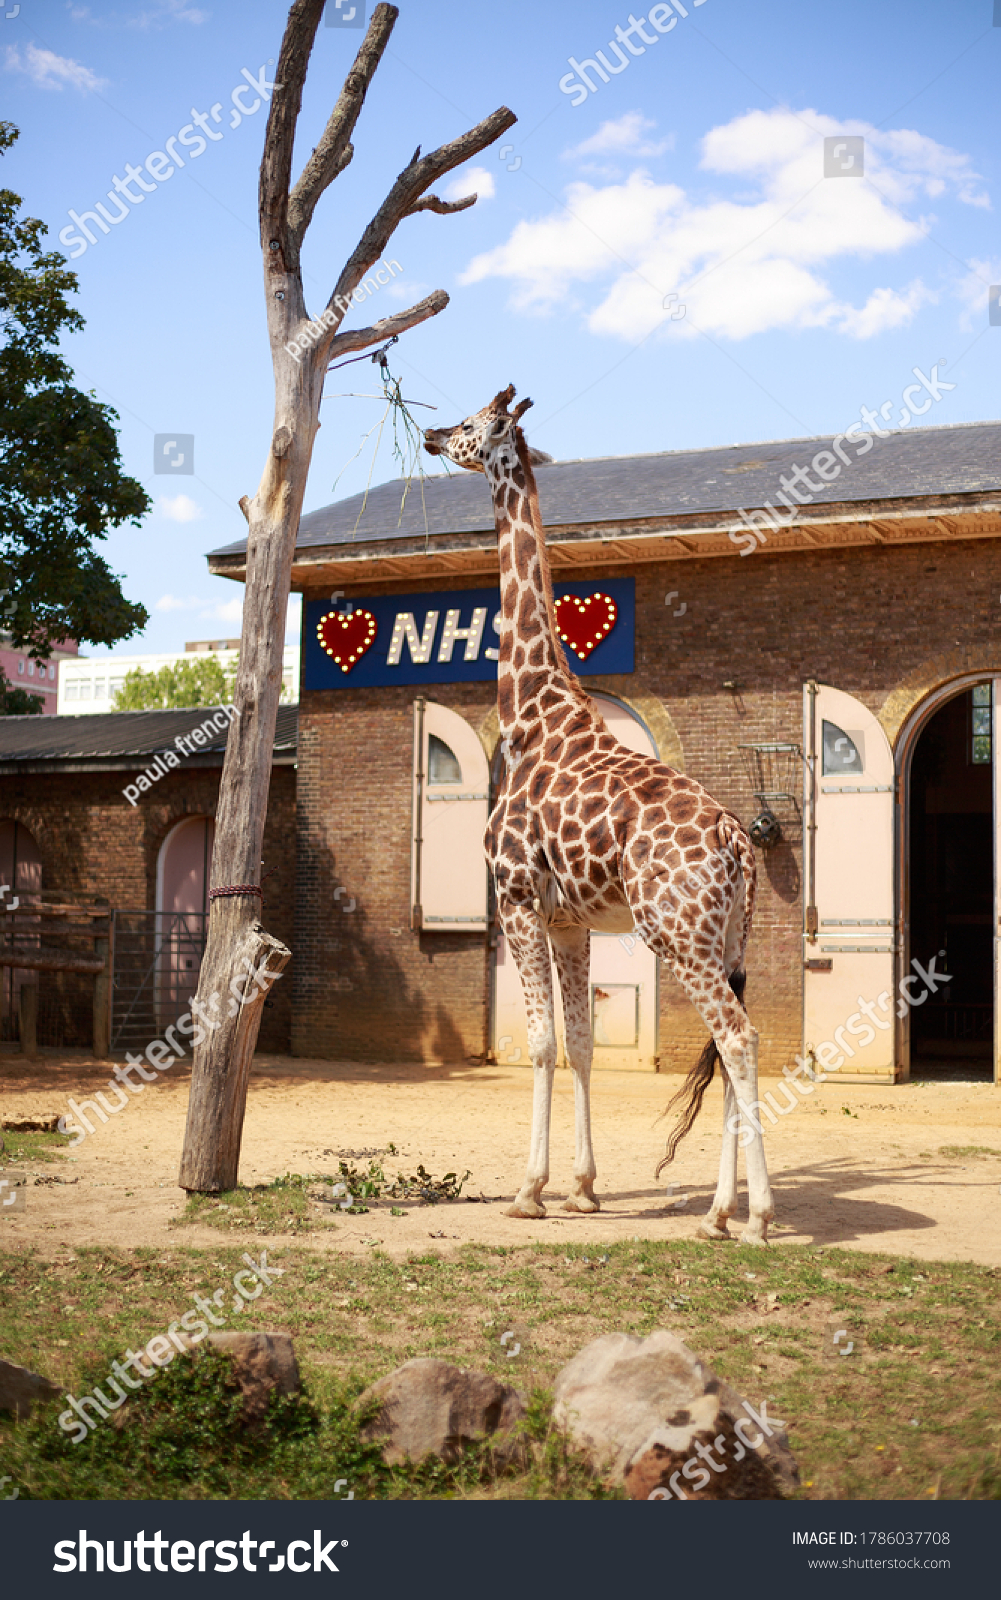 Giraffe House, London zoo, UK, 2020. The giraffe house has been decorated with a sign we love the NHS, this is to thank the NHS during the Covid 19 outbreak,